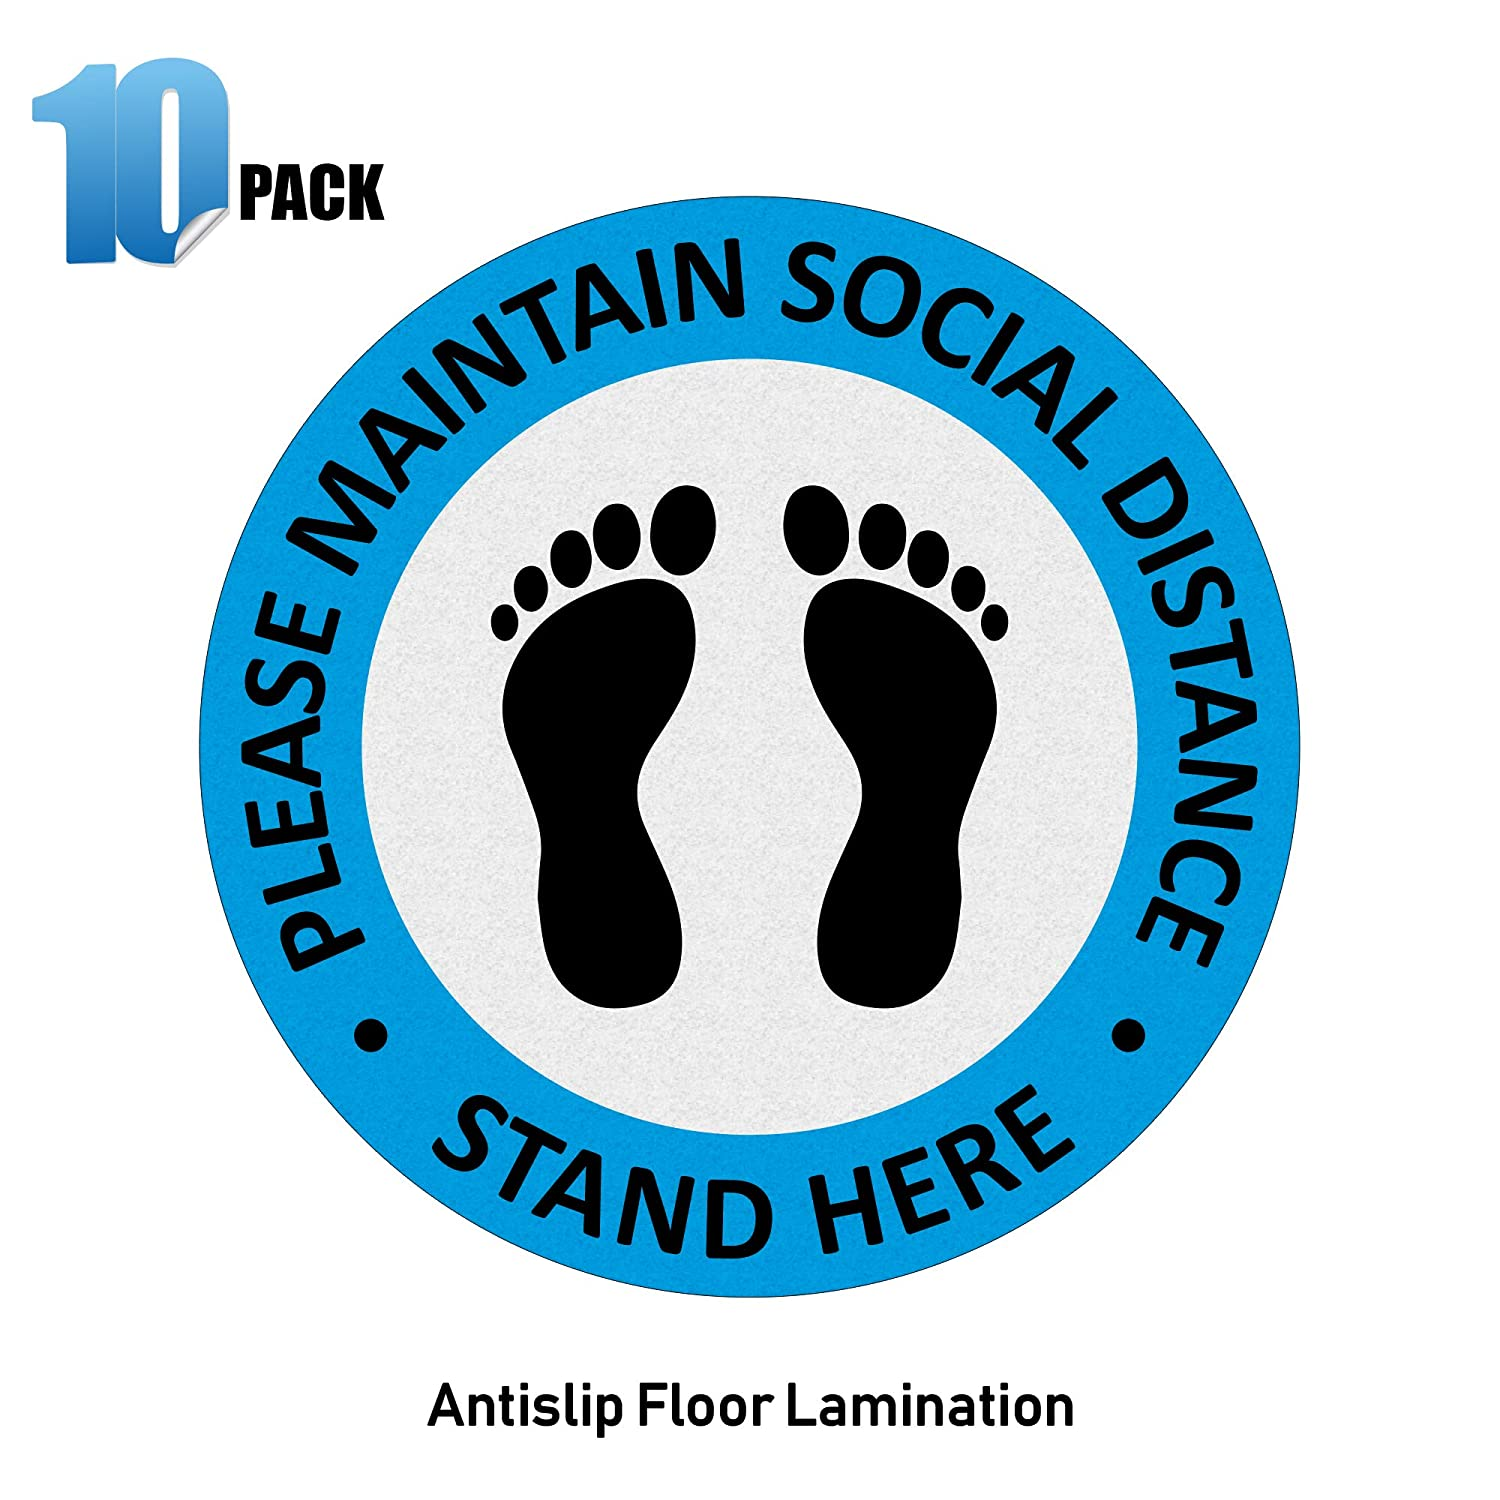 Anti-Slip Floor Over Lamination Decals for 6 feet Distance 7.5 Inch Diameter Round Pack of 10 Stand Here Maintain Physical Distance Floor Stickers IGNIXIA Social Distancing Floor Signs Blue